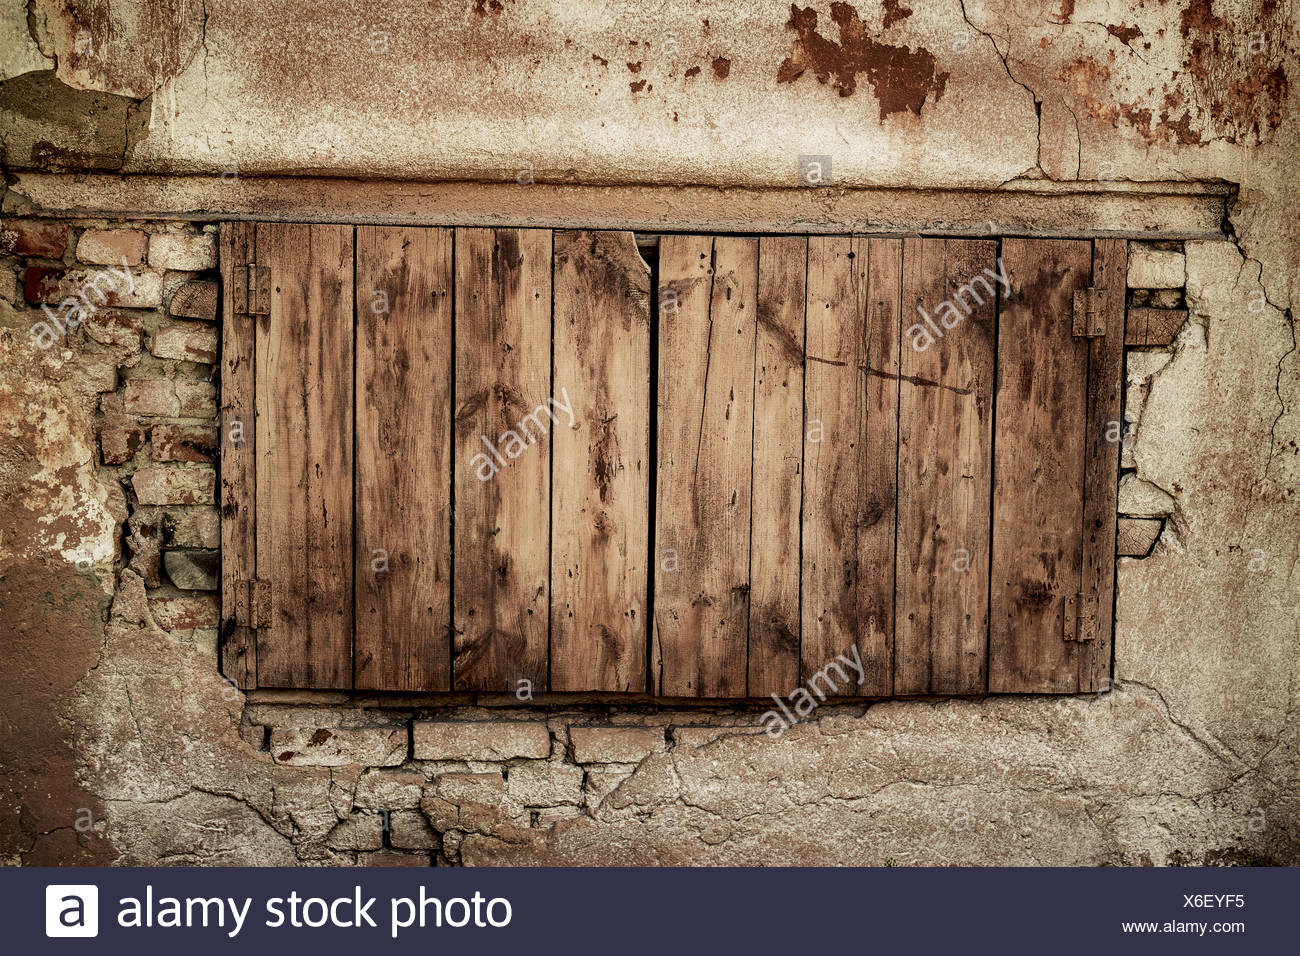 wall of an abandoned house with boarded up window - Stock Image